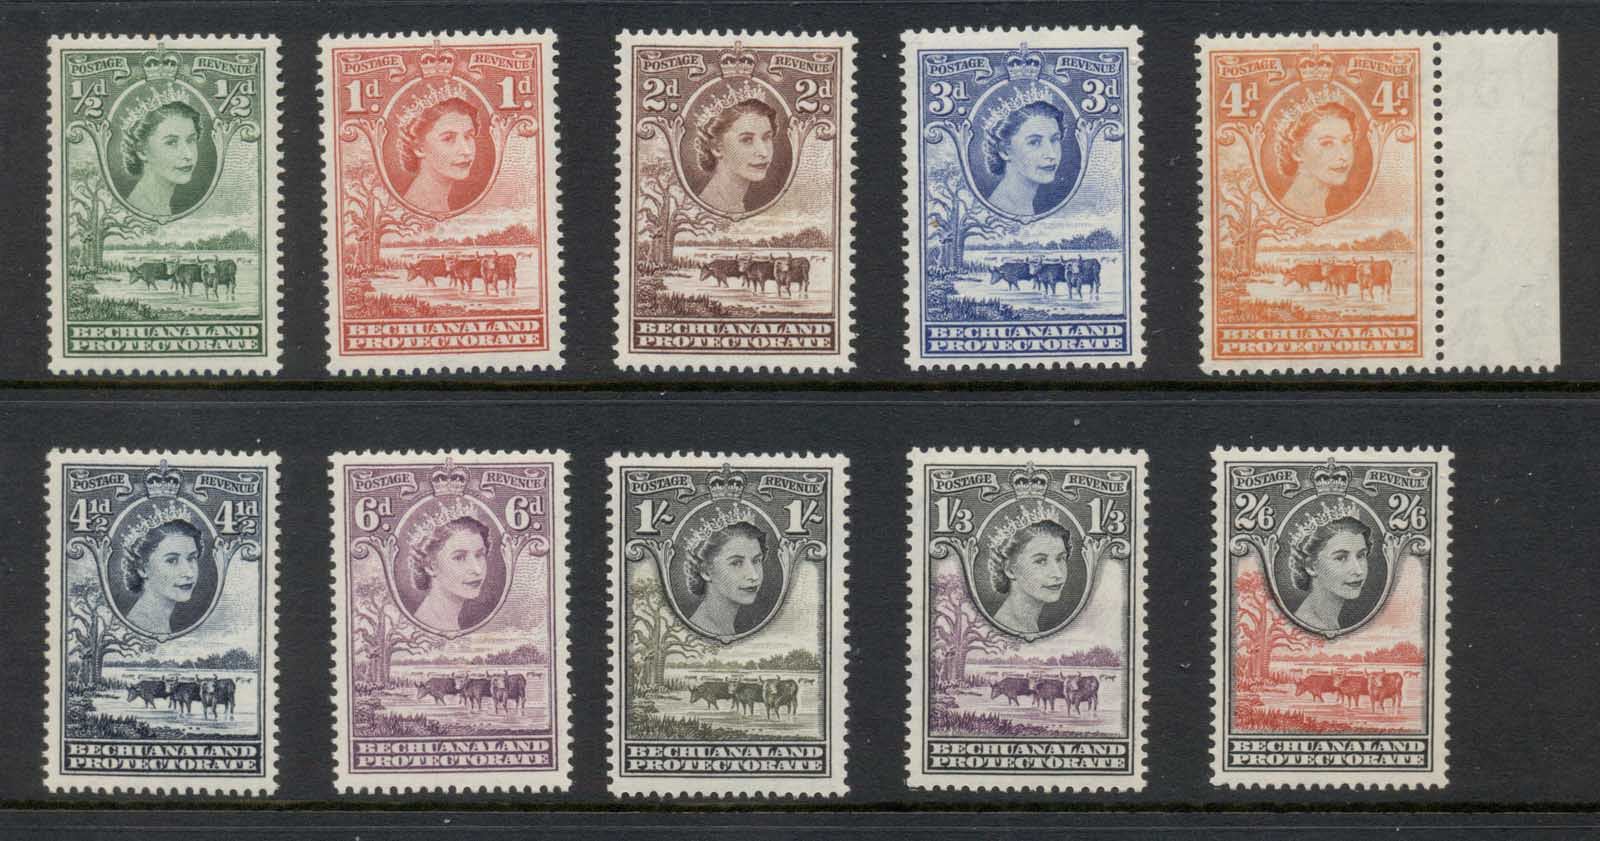 Bechuanaland Protectorate 1955-58 QEII Pictorials, Cattle to 2/6d MUH